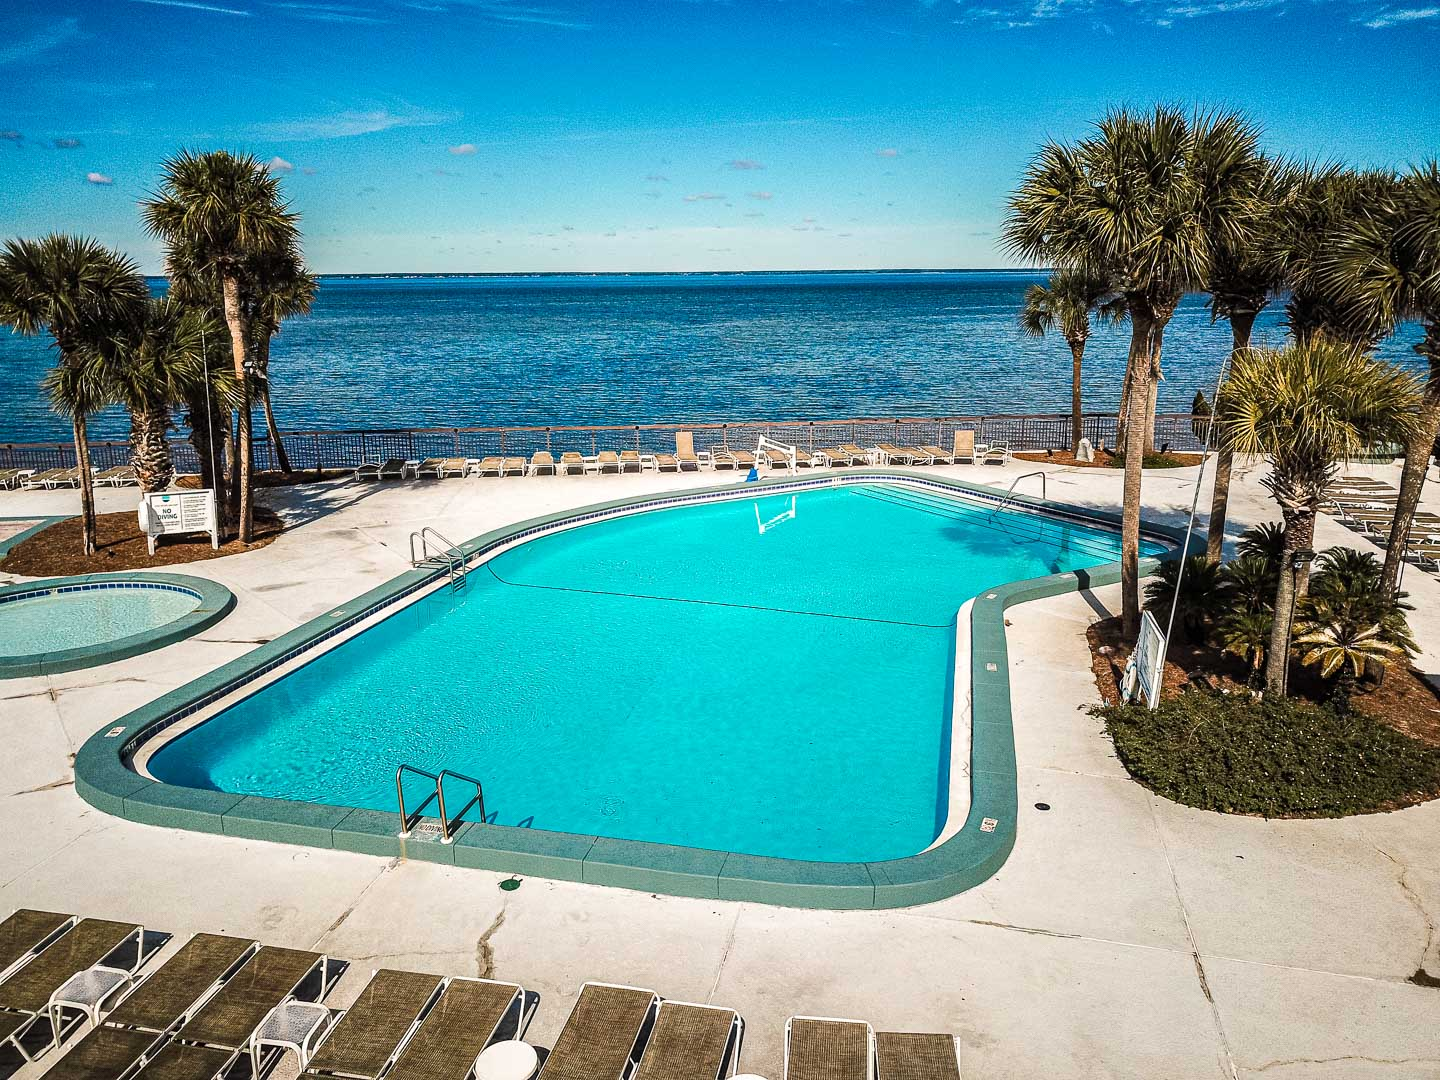 A spacious outdoor swimming pool with a beach view at VRI's Bay Club of Sandestin in Florida.